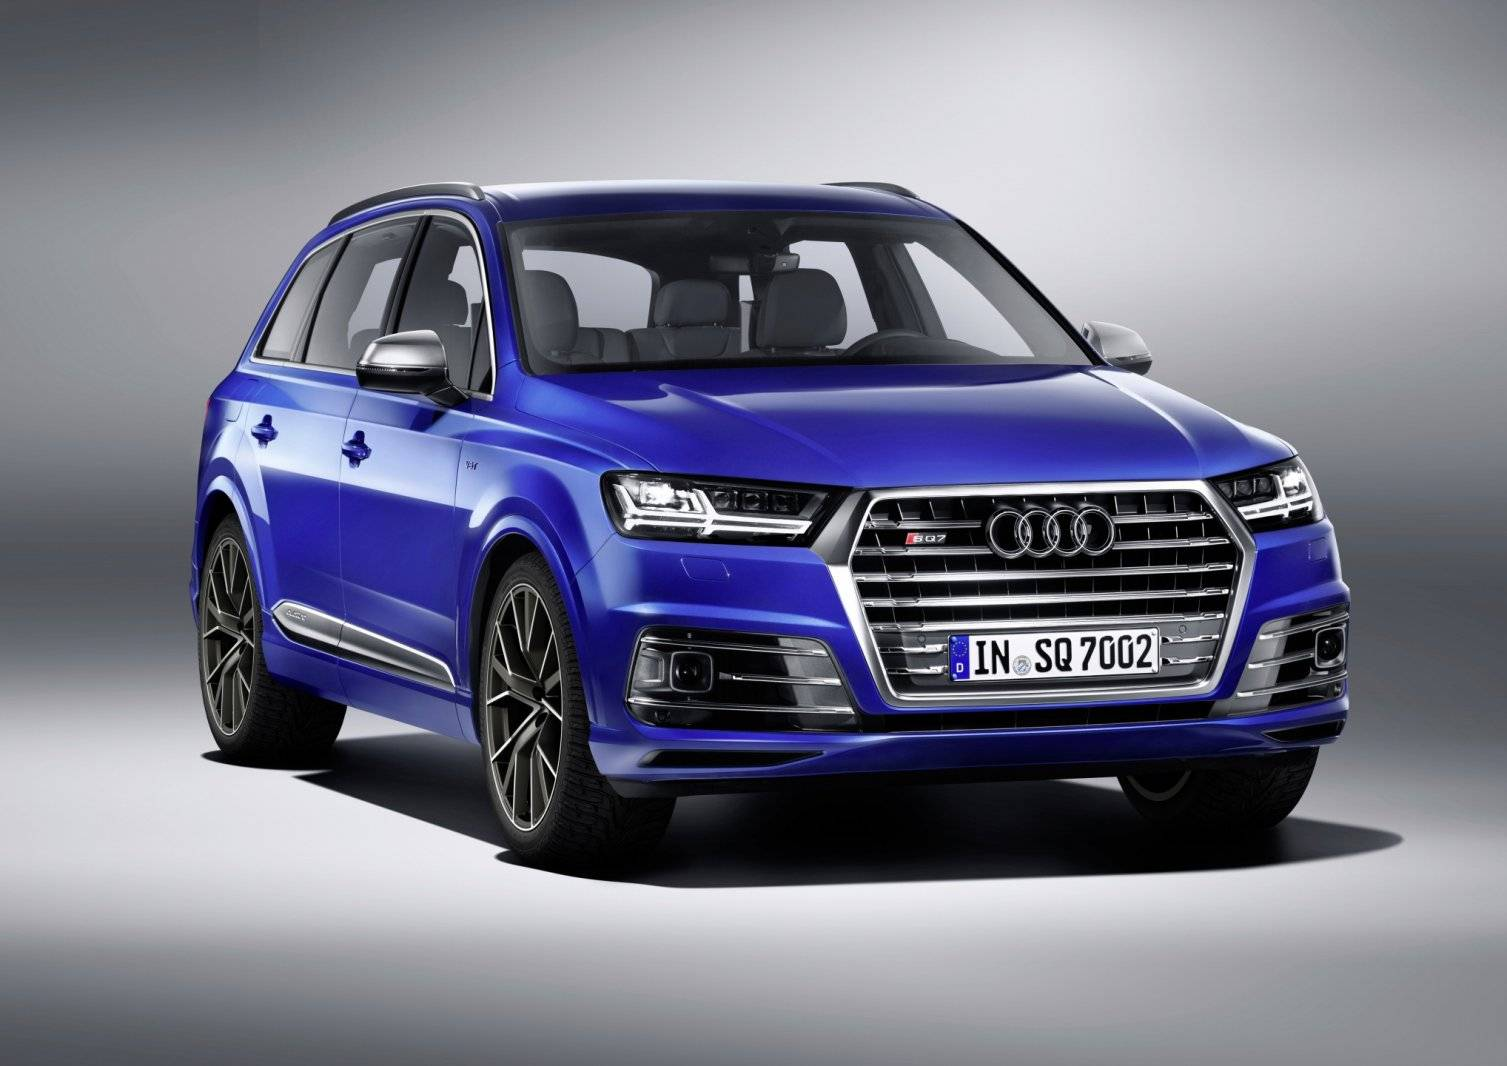 Audi sq7 tdi 435 pk en elektrische supercharger for For sale on line